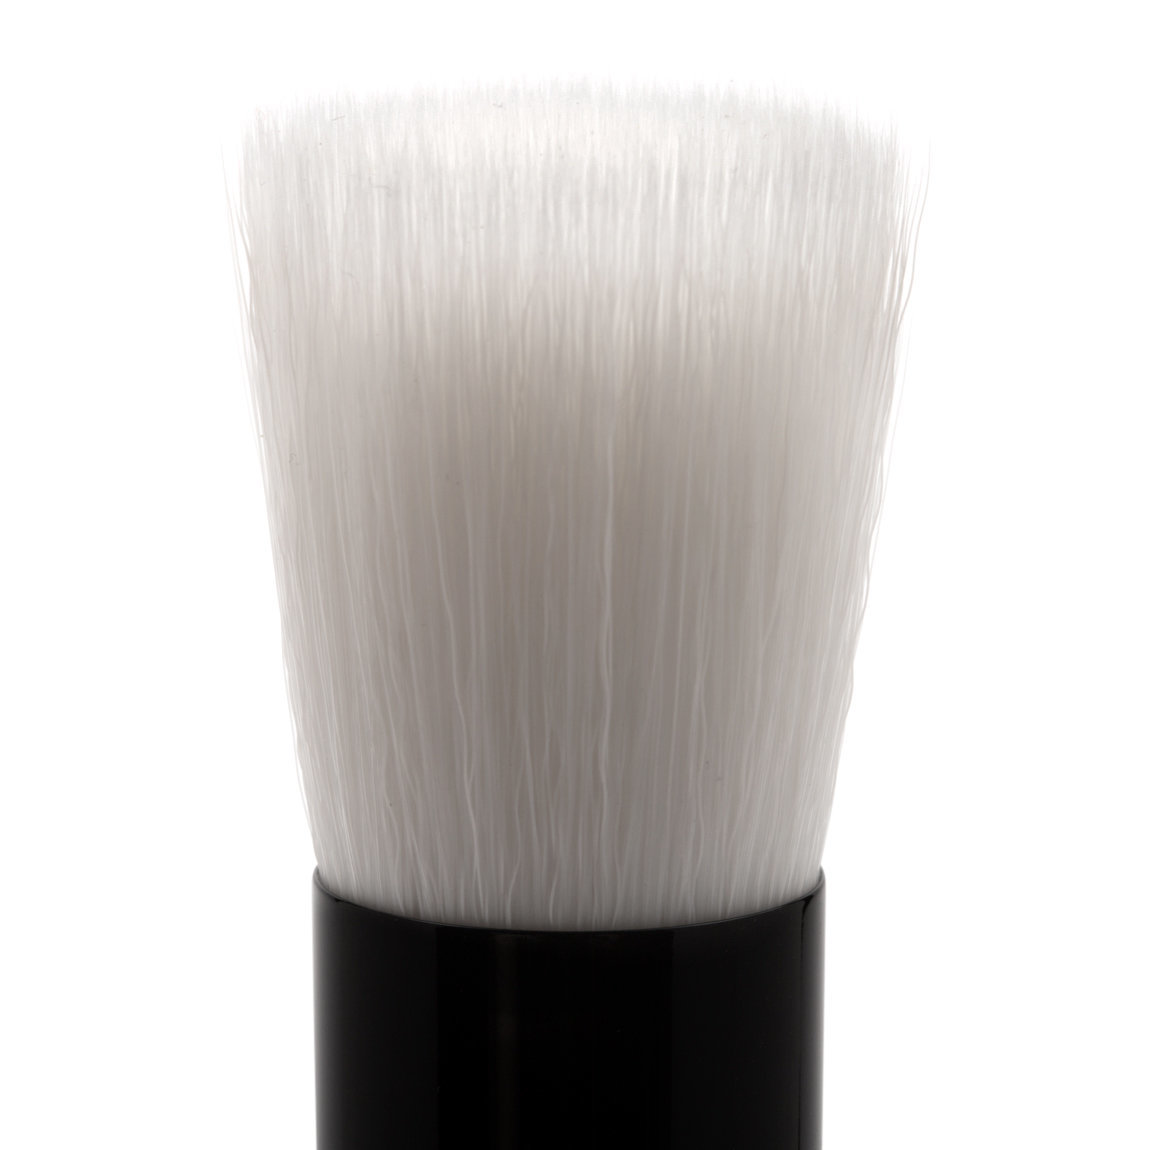 Rae Morris Jishaku Brush 23: Liquid Foundation